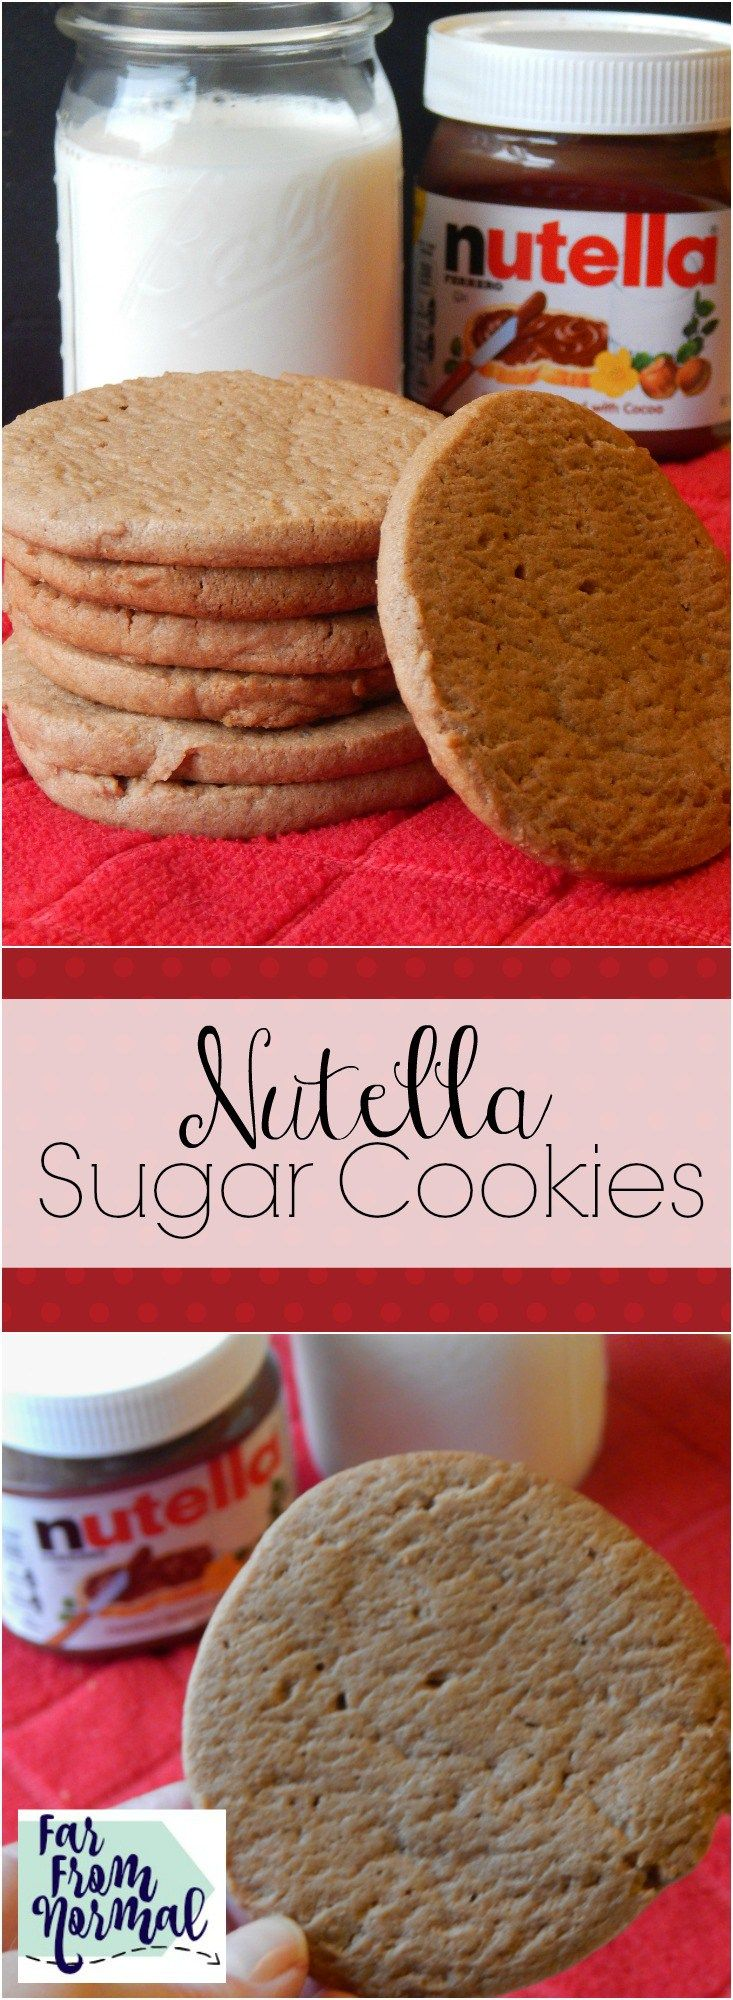 These Nutella sugar cookies are seriously AMAZING!!! Soft chewy, perfect flavor and texture!!